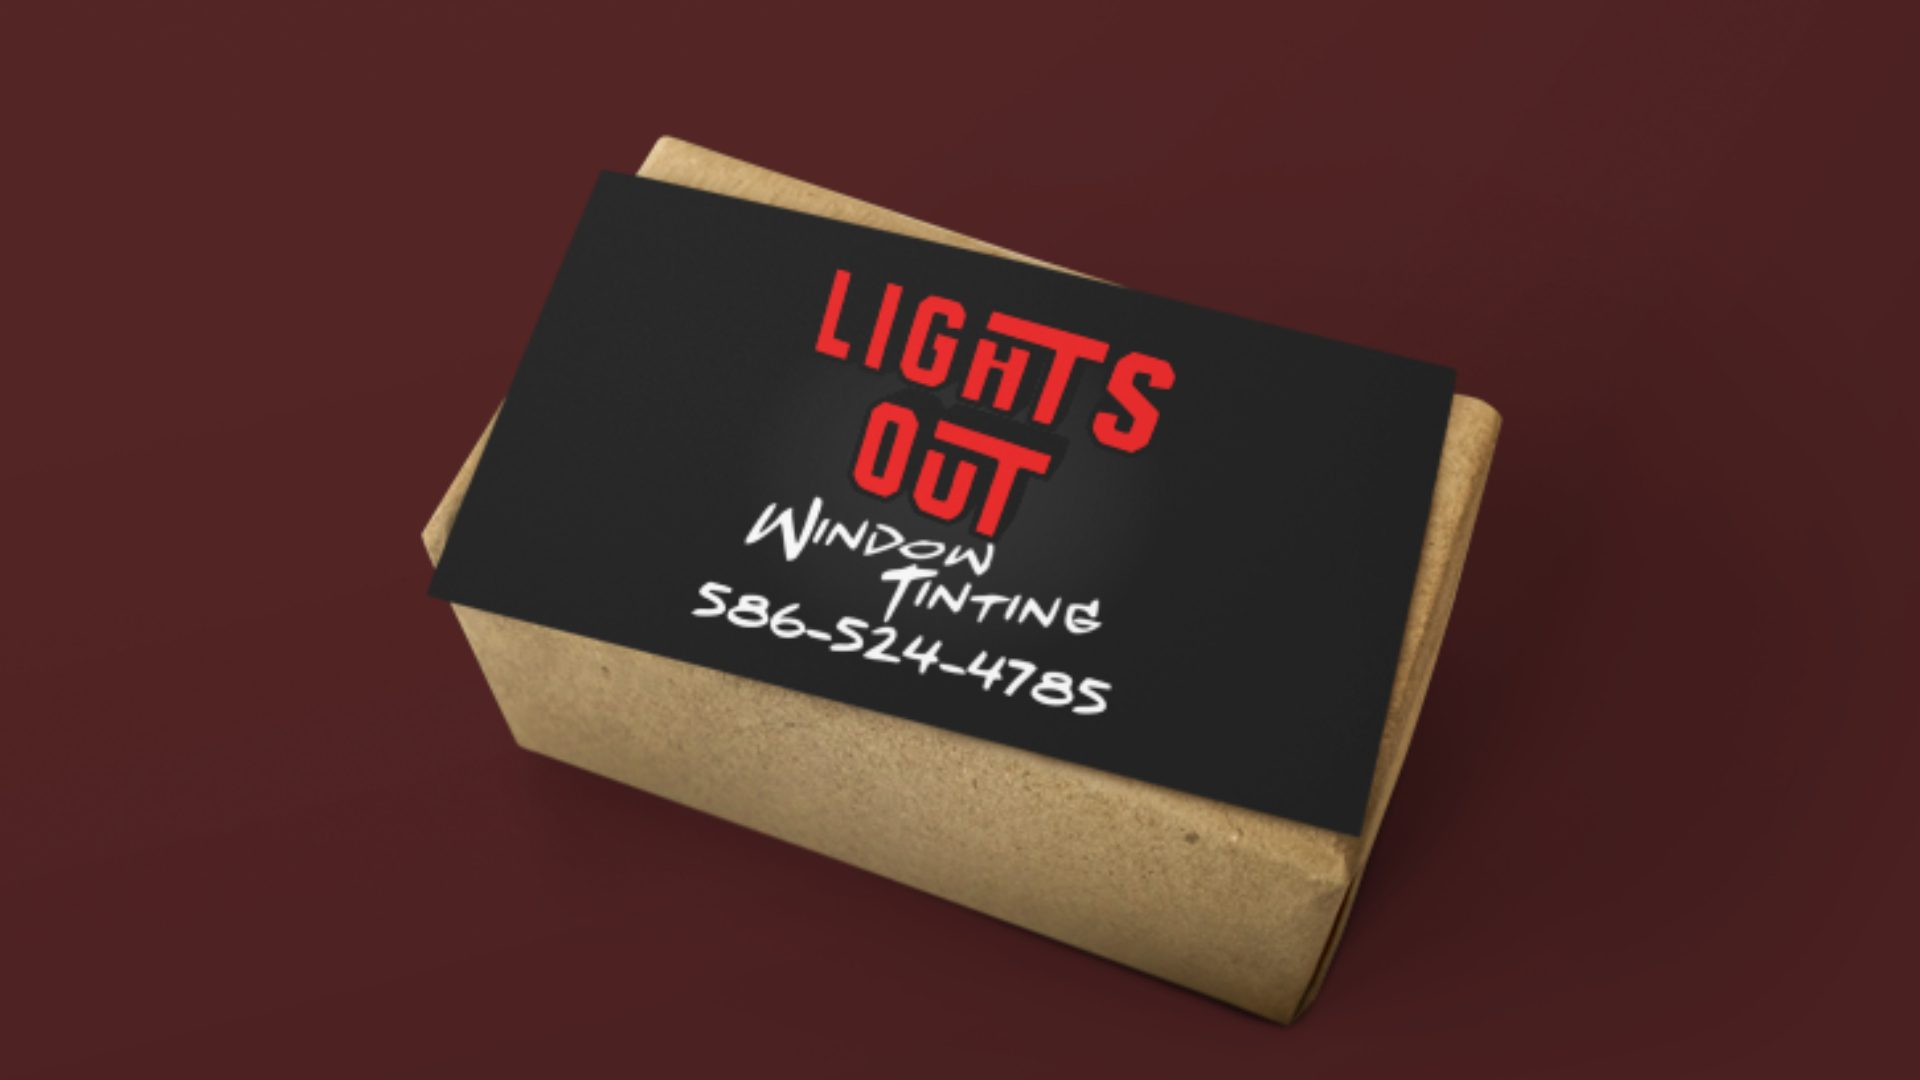 Lights Out Window Tinting - Business Card Mockup (4)